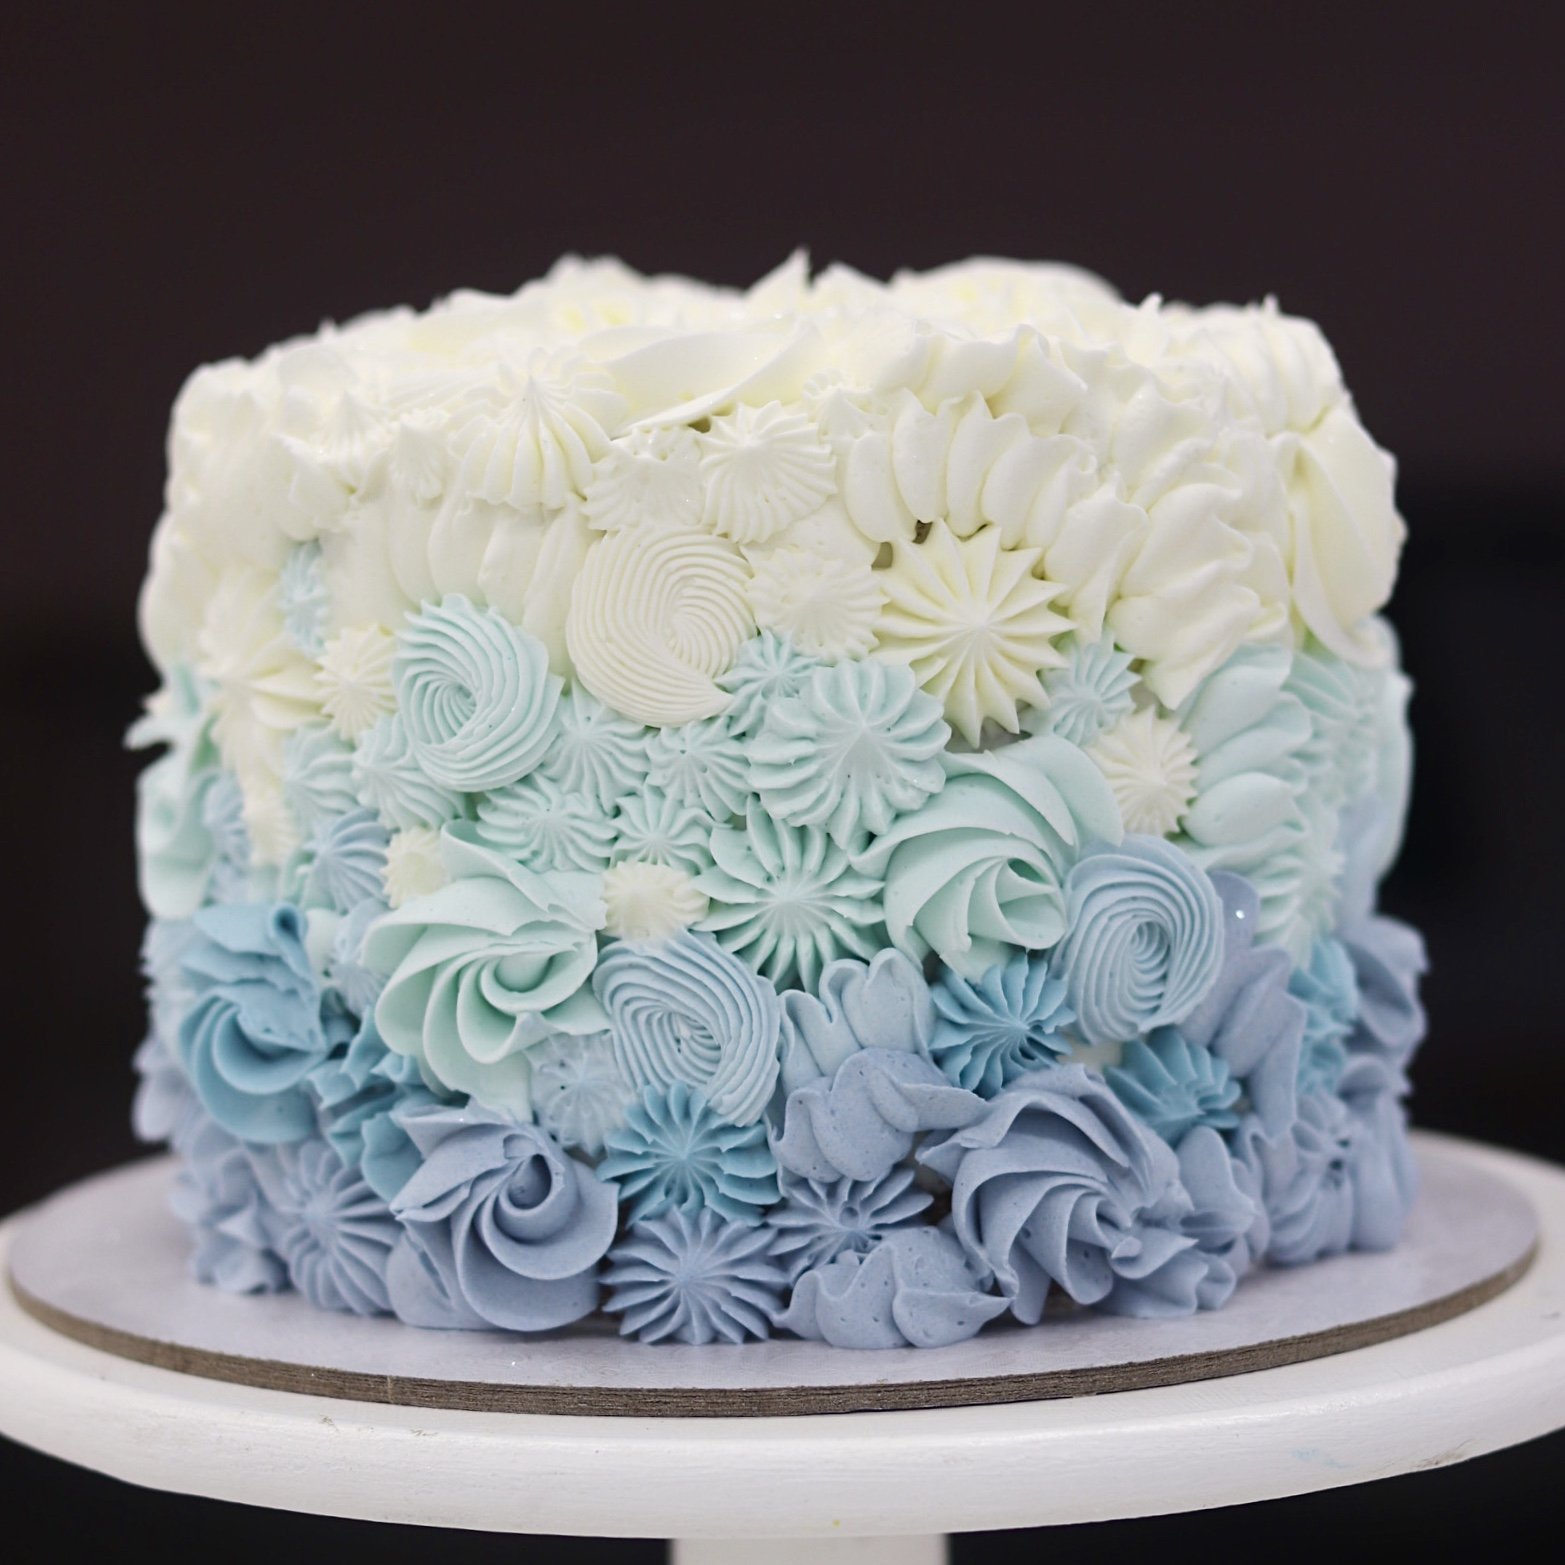 Two Tier Drip Cake